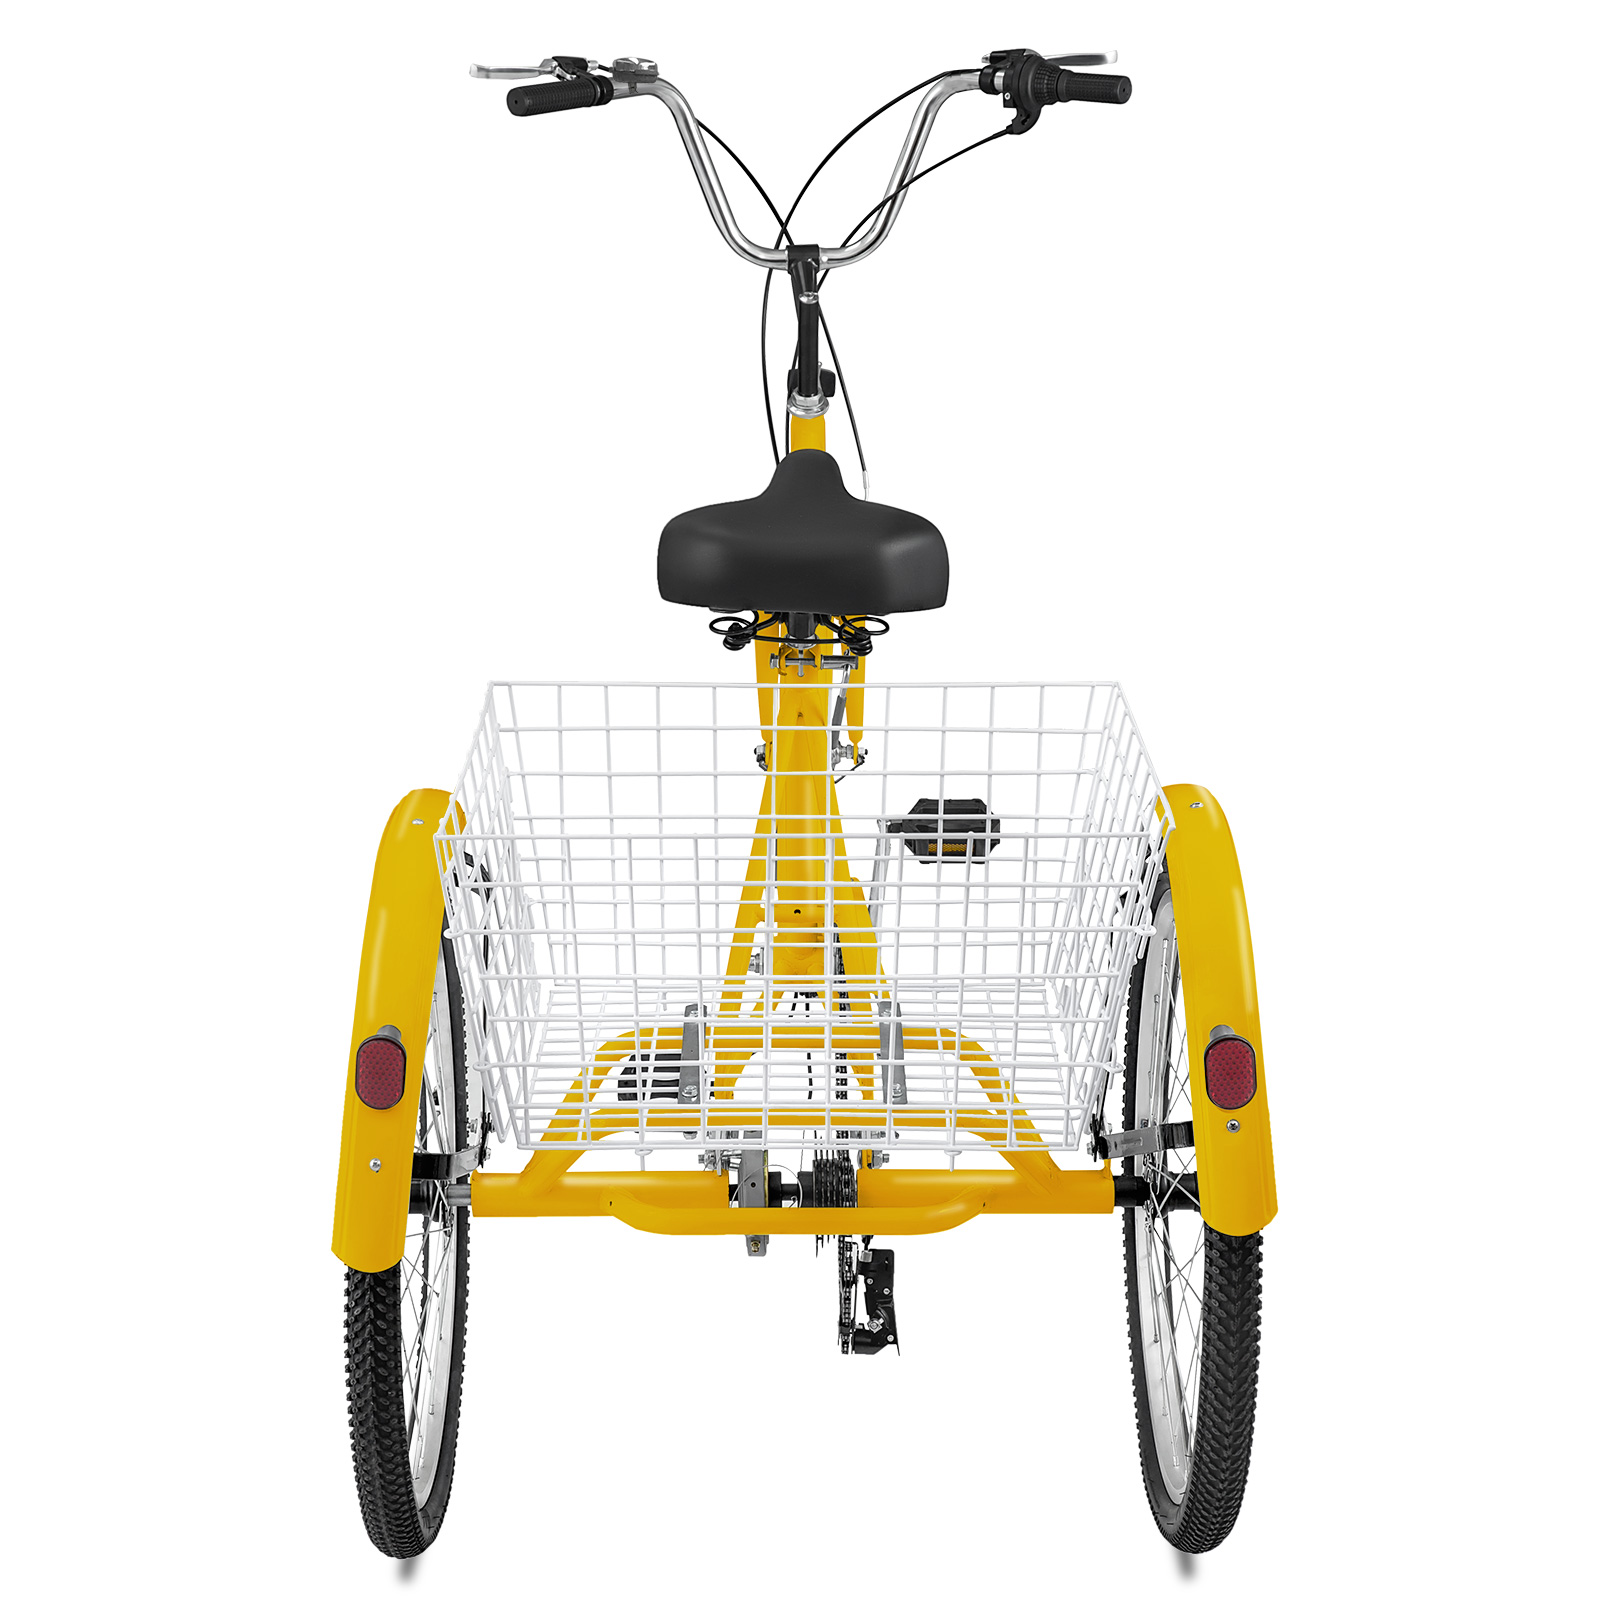 20-24-26-034-Adult-Tricycle-1-7-Speed-3-Wheel-Large-Basket-For-Shopping-Optional thumbnail 324